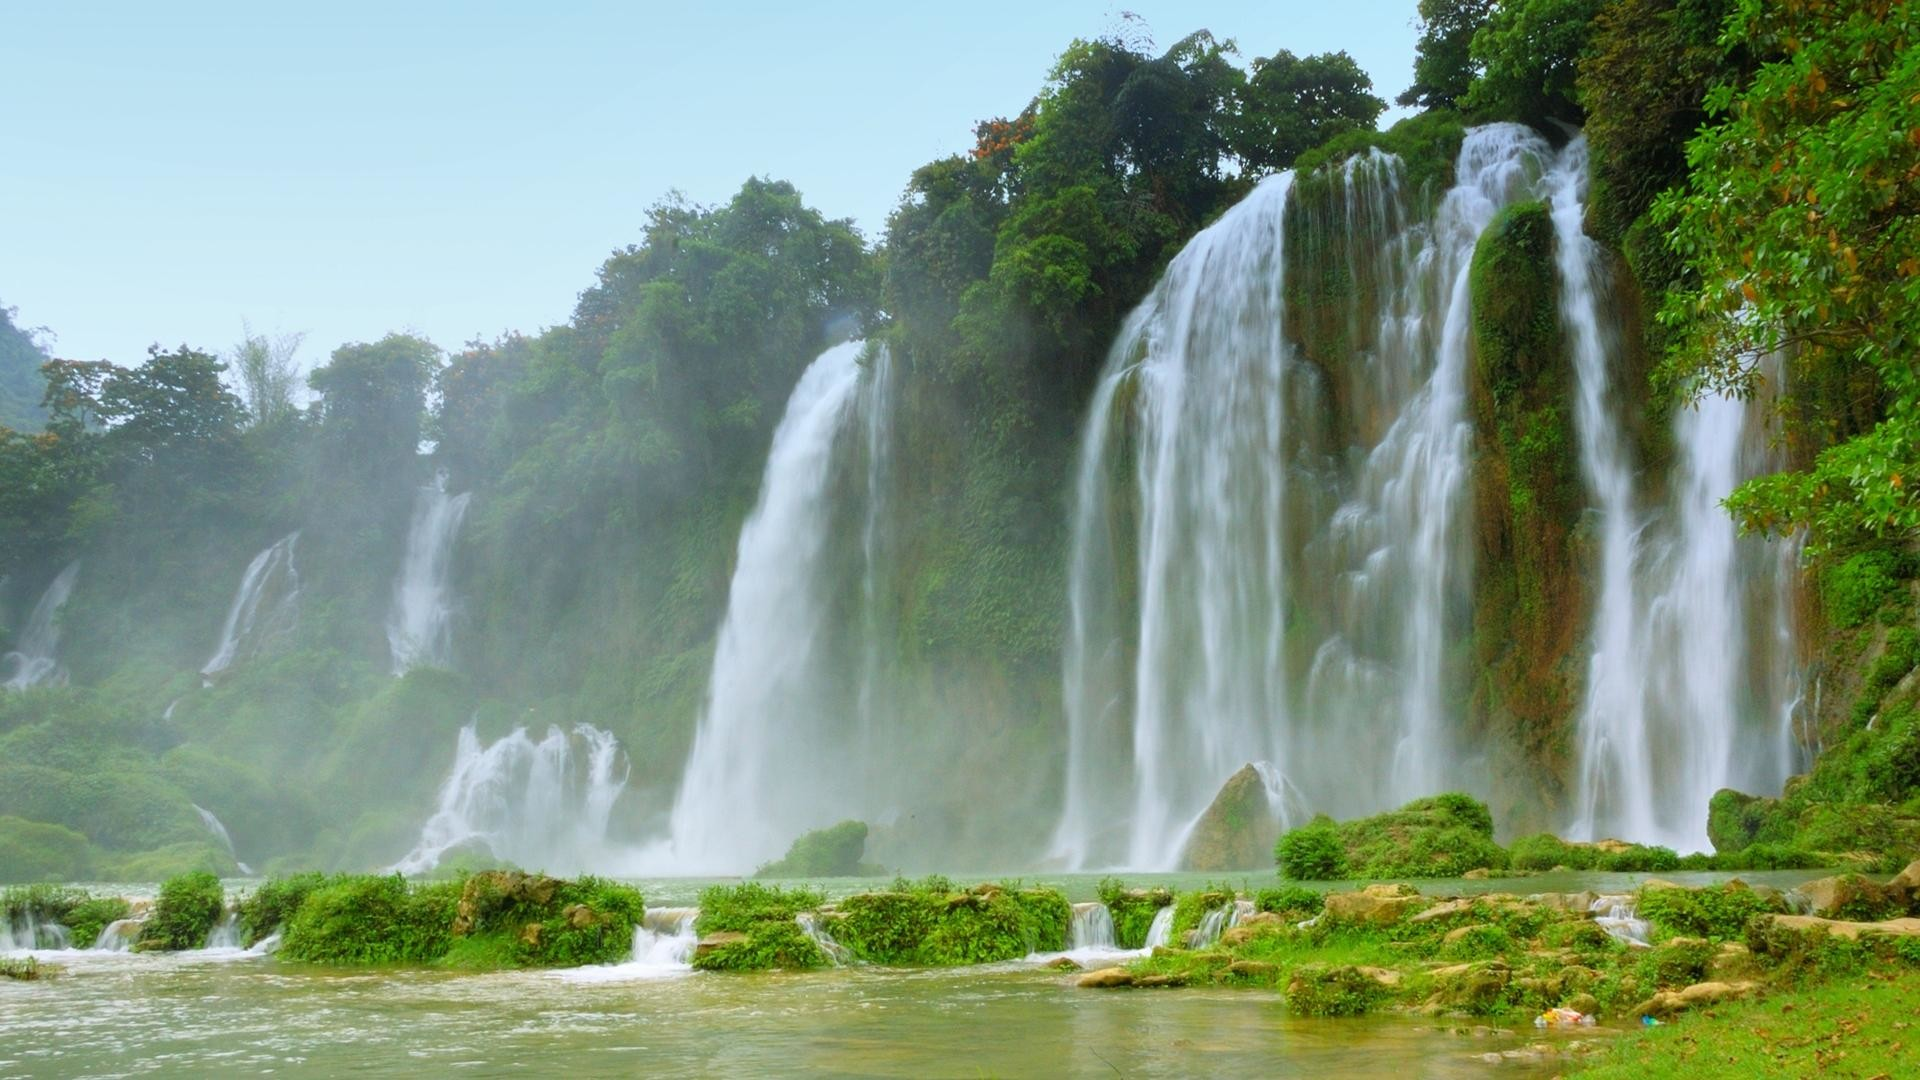 Free Apk Files Interactive Live Wallpapers Source Waterfalls With Sound 36 Images